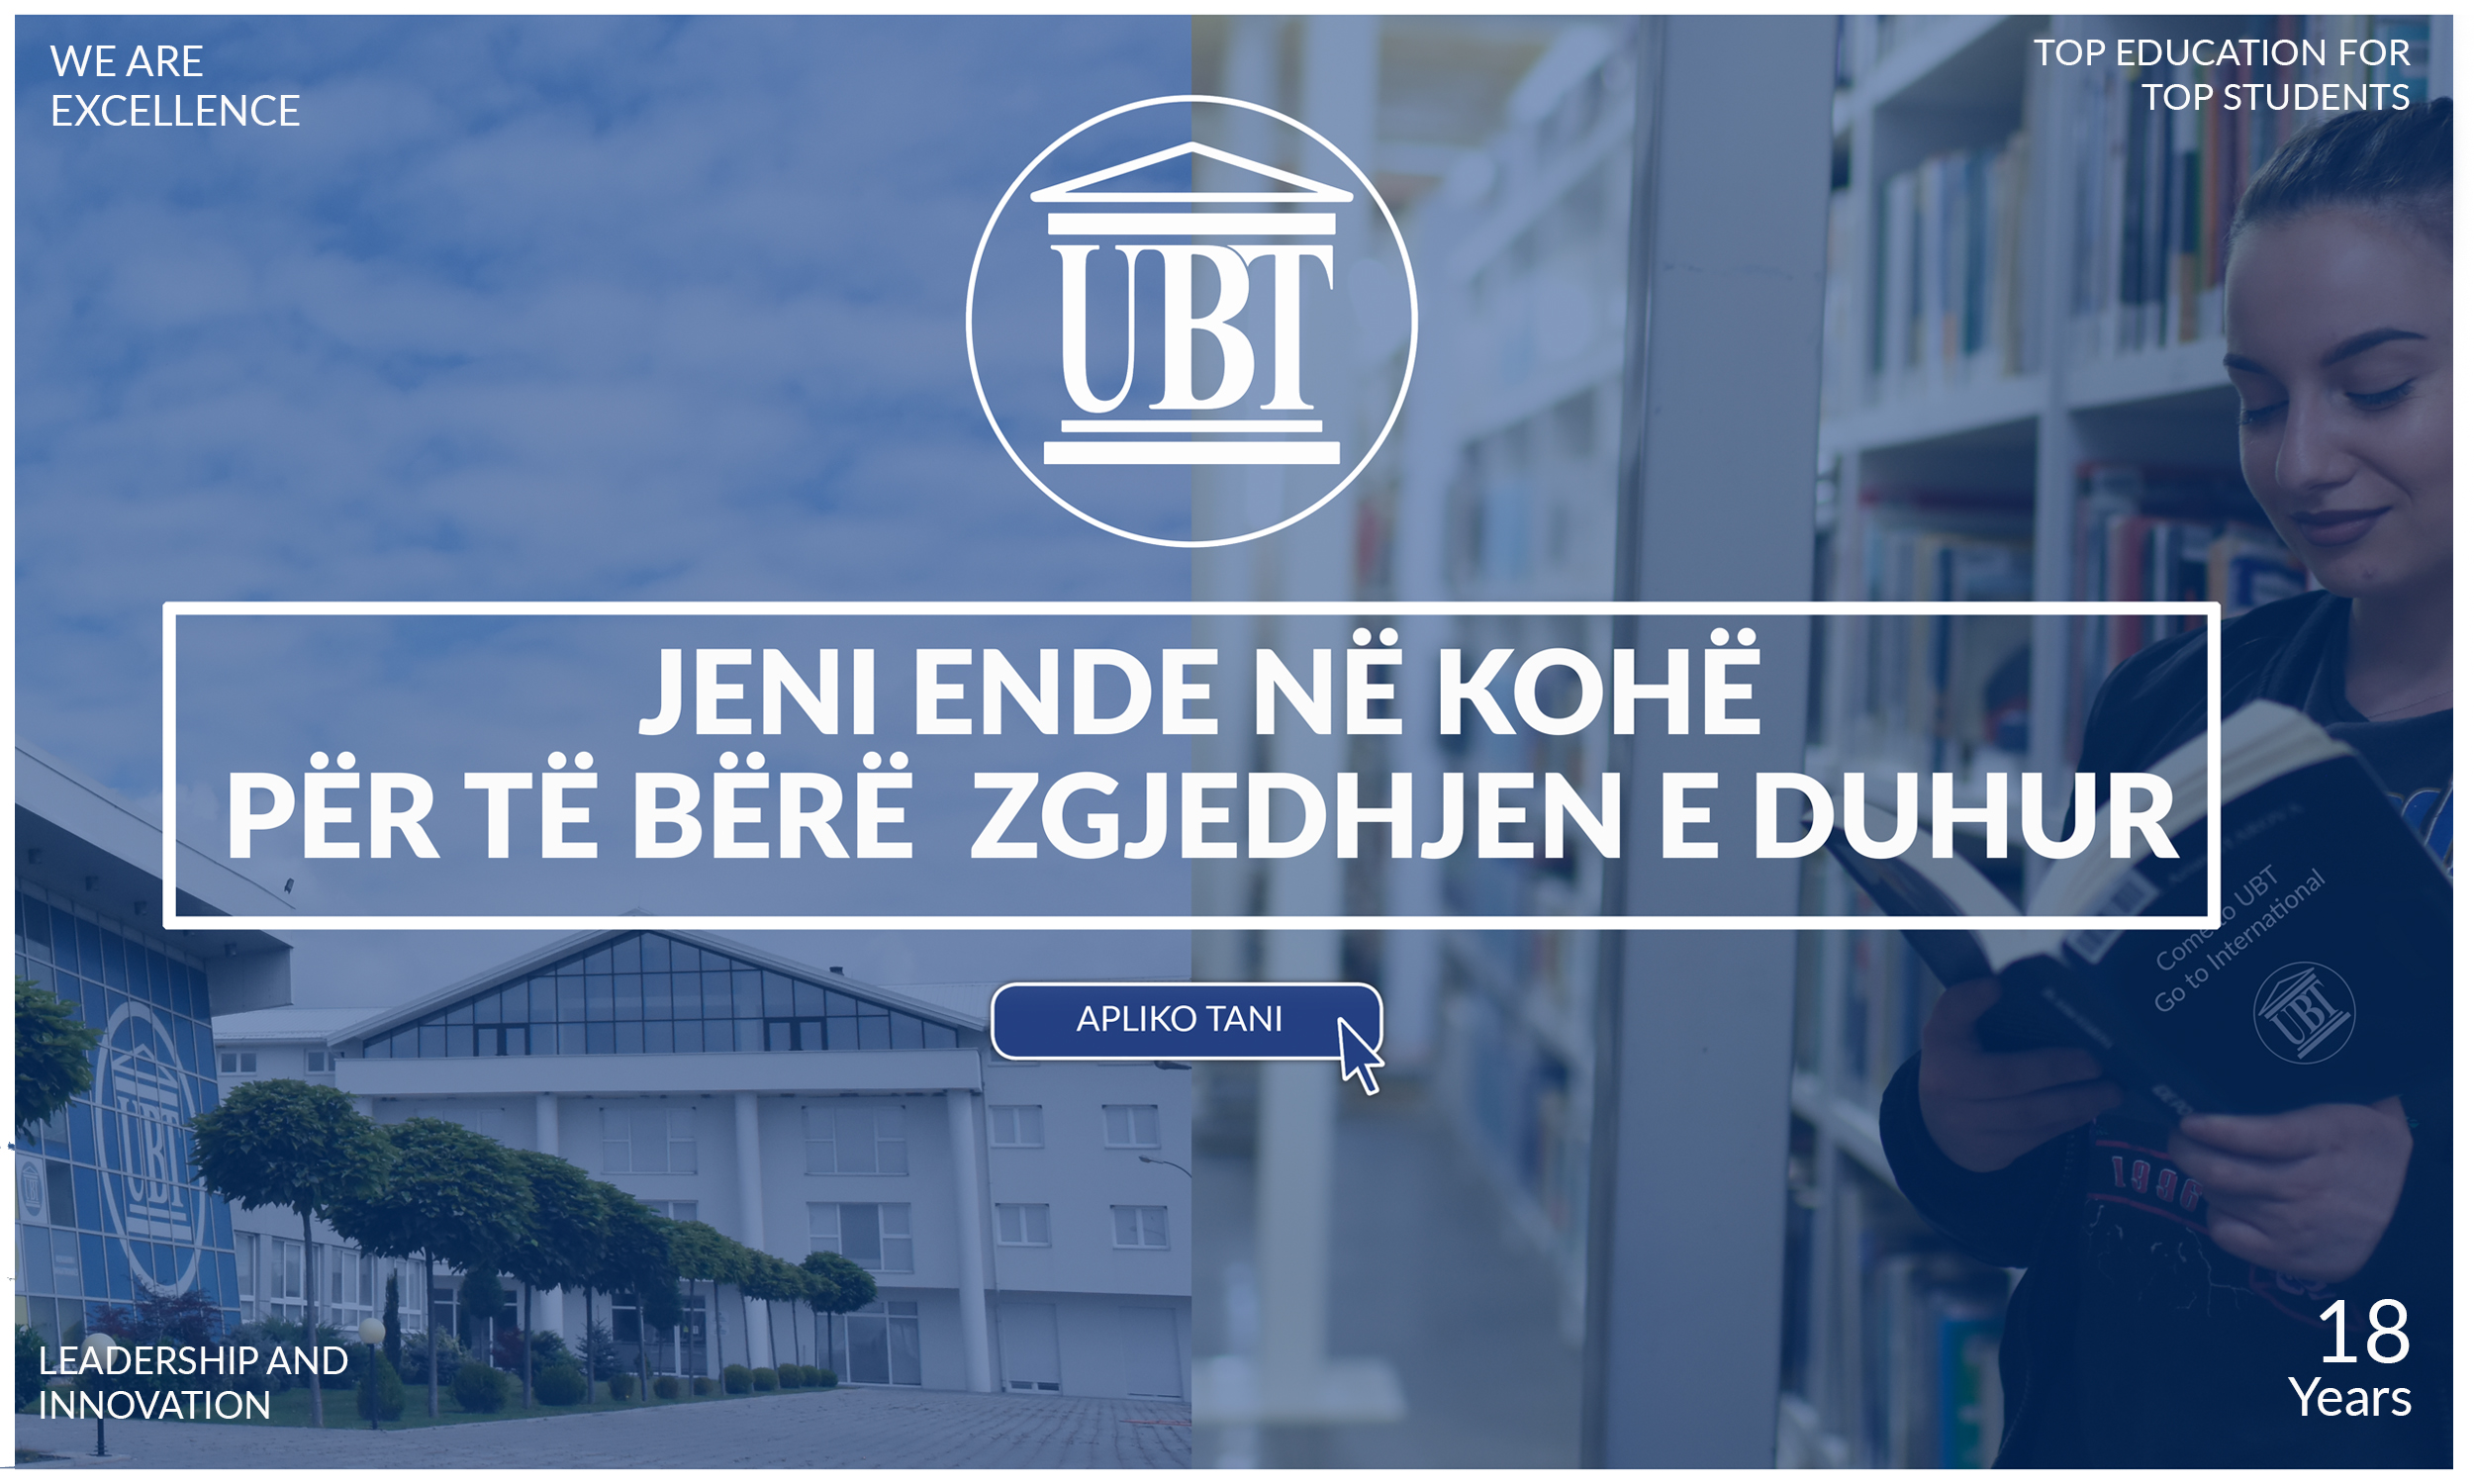 Make the right choice and transfer your studies at UBT